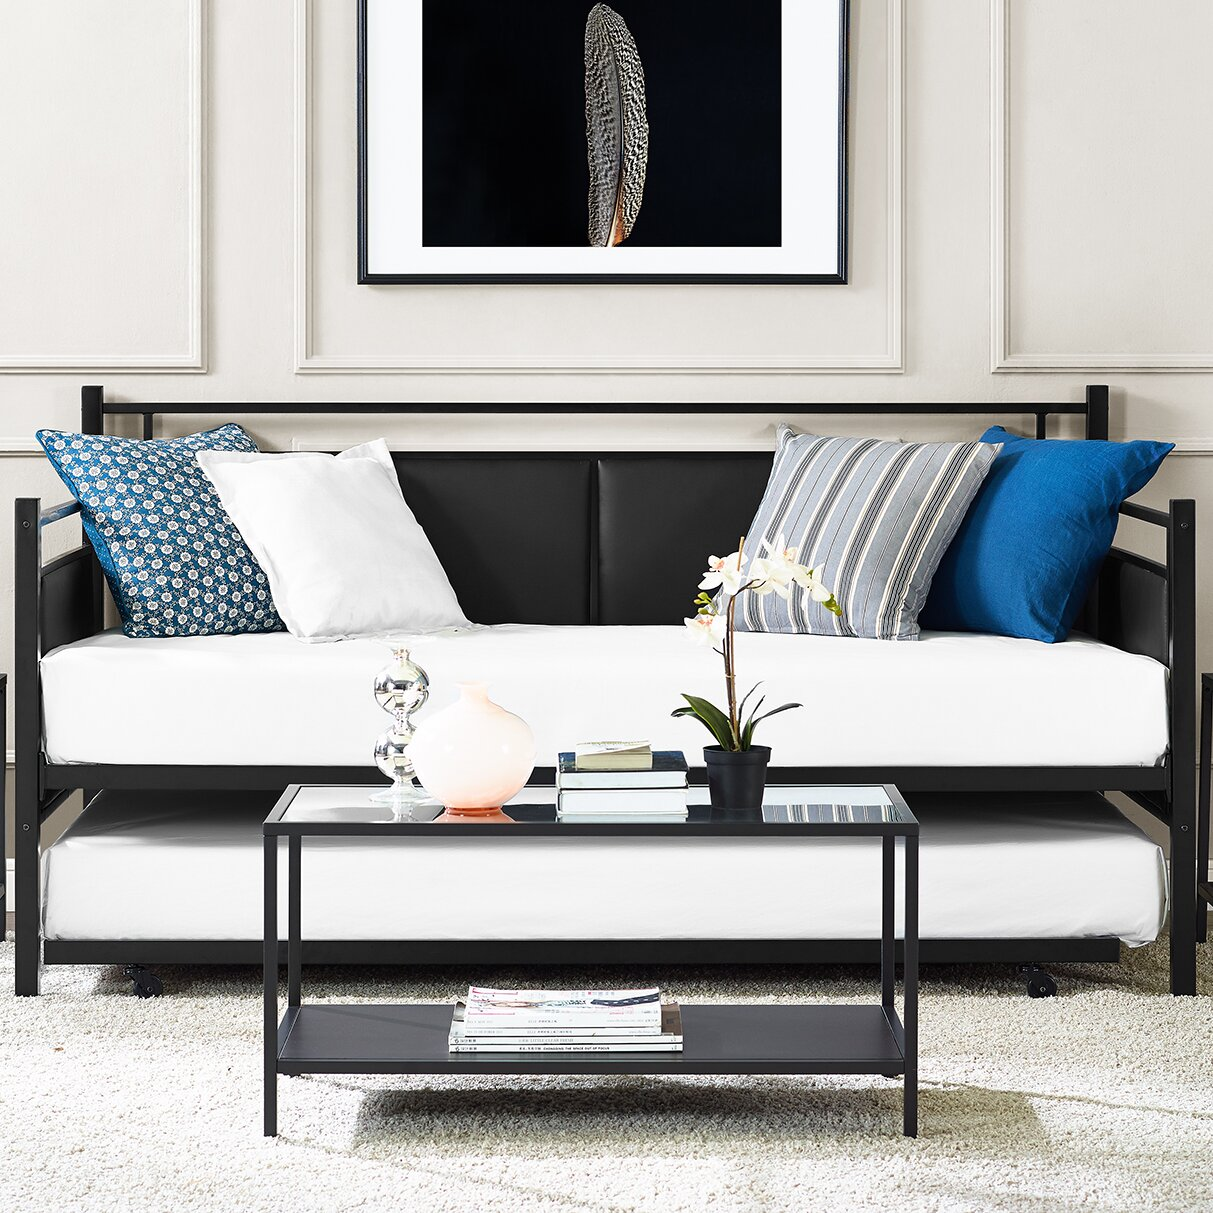 wade logan petaluma metal and upholstered daybed with trundle reviews wayfair. Black Bedroom Furniture Sets. Home Design Ideas